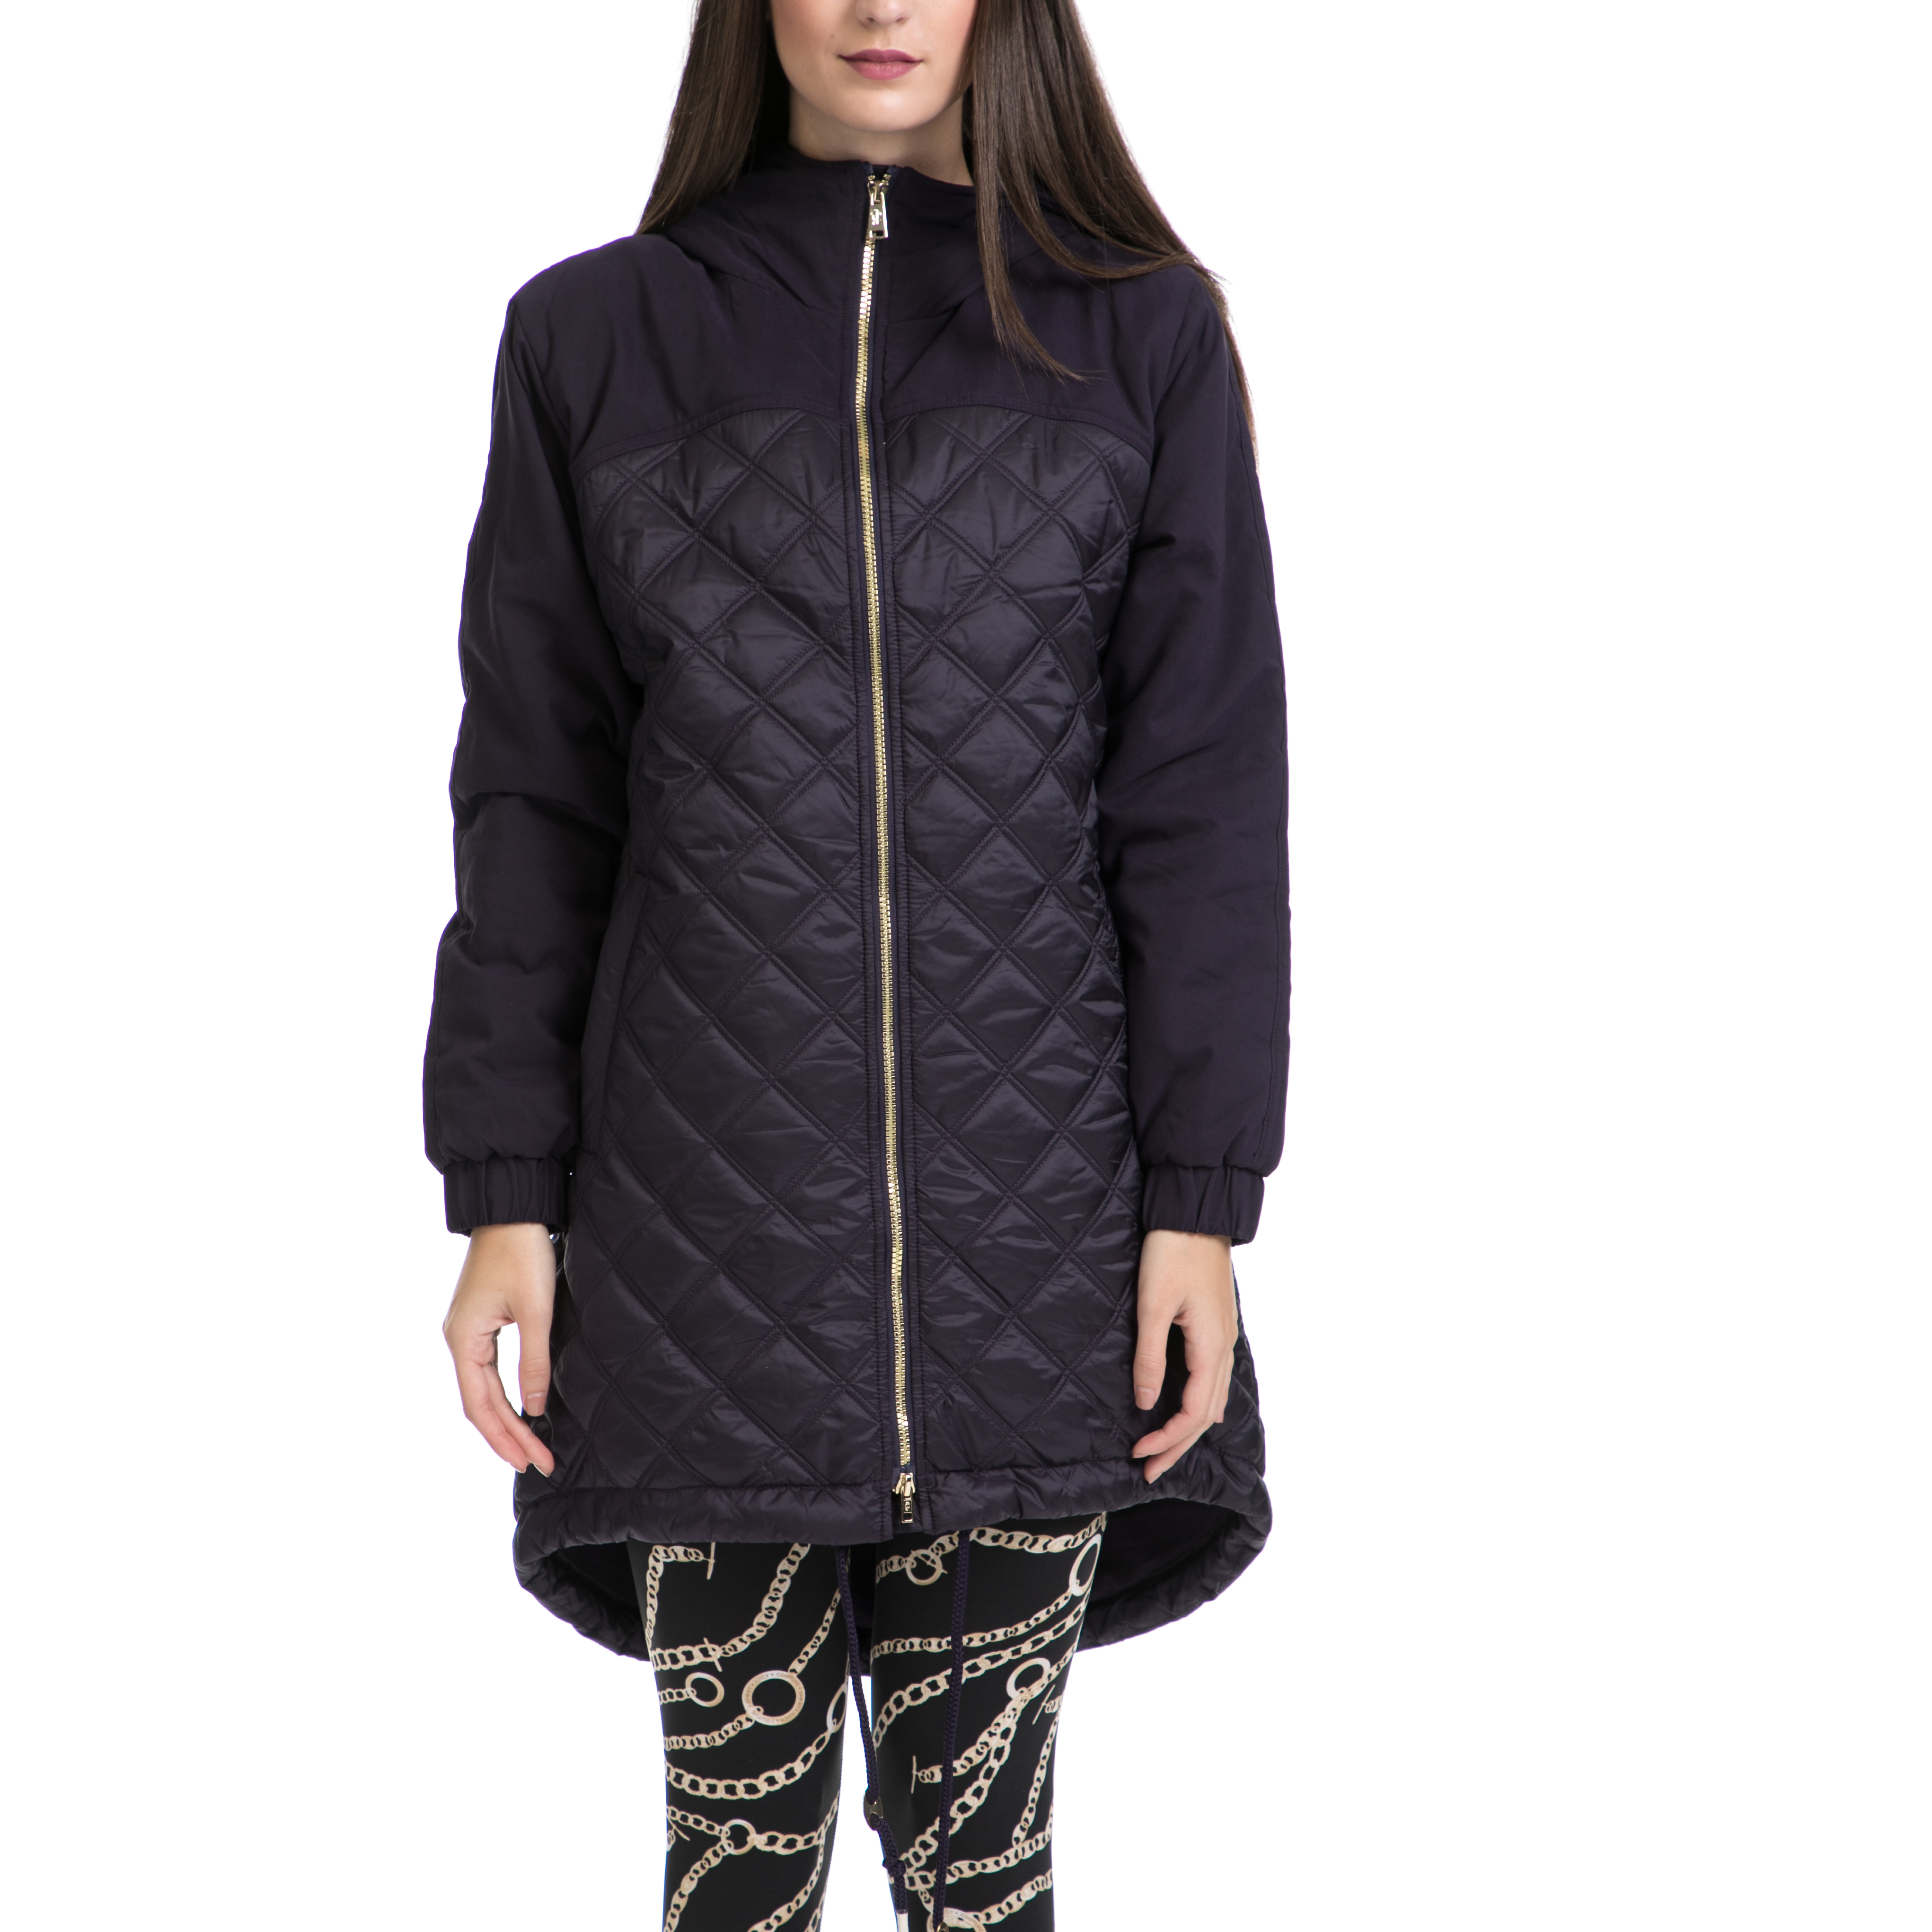 JUICY COUTURE – Γυναικείο παρκά QUILTED NYLON PUFFER PARKA μαύρο-μπλε